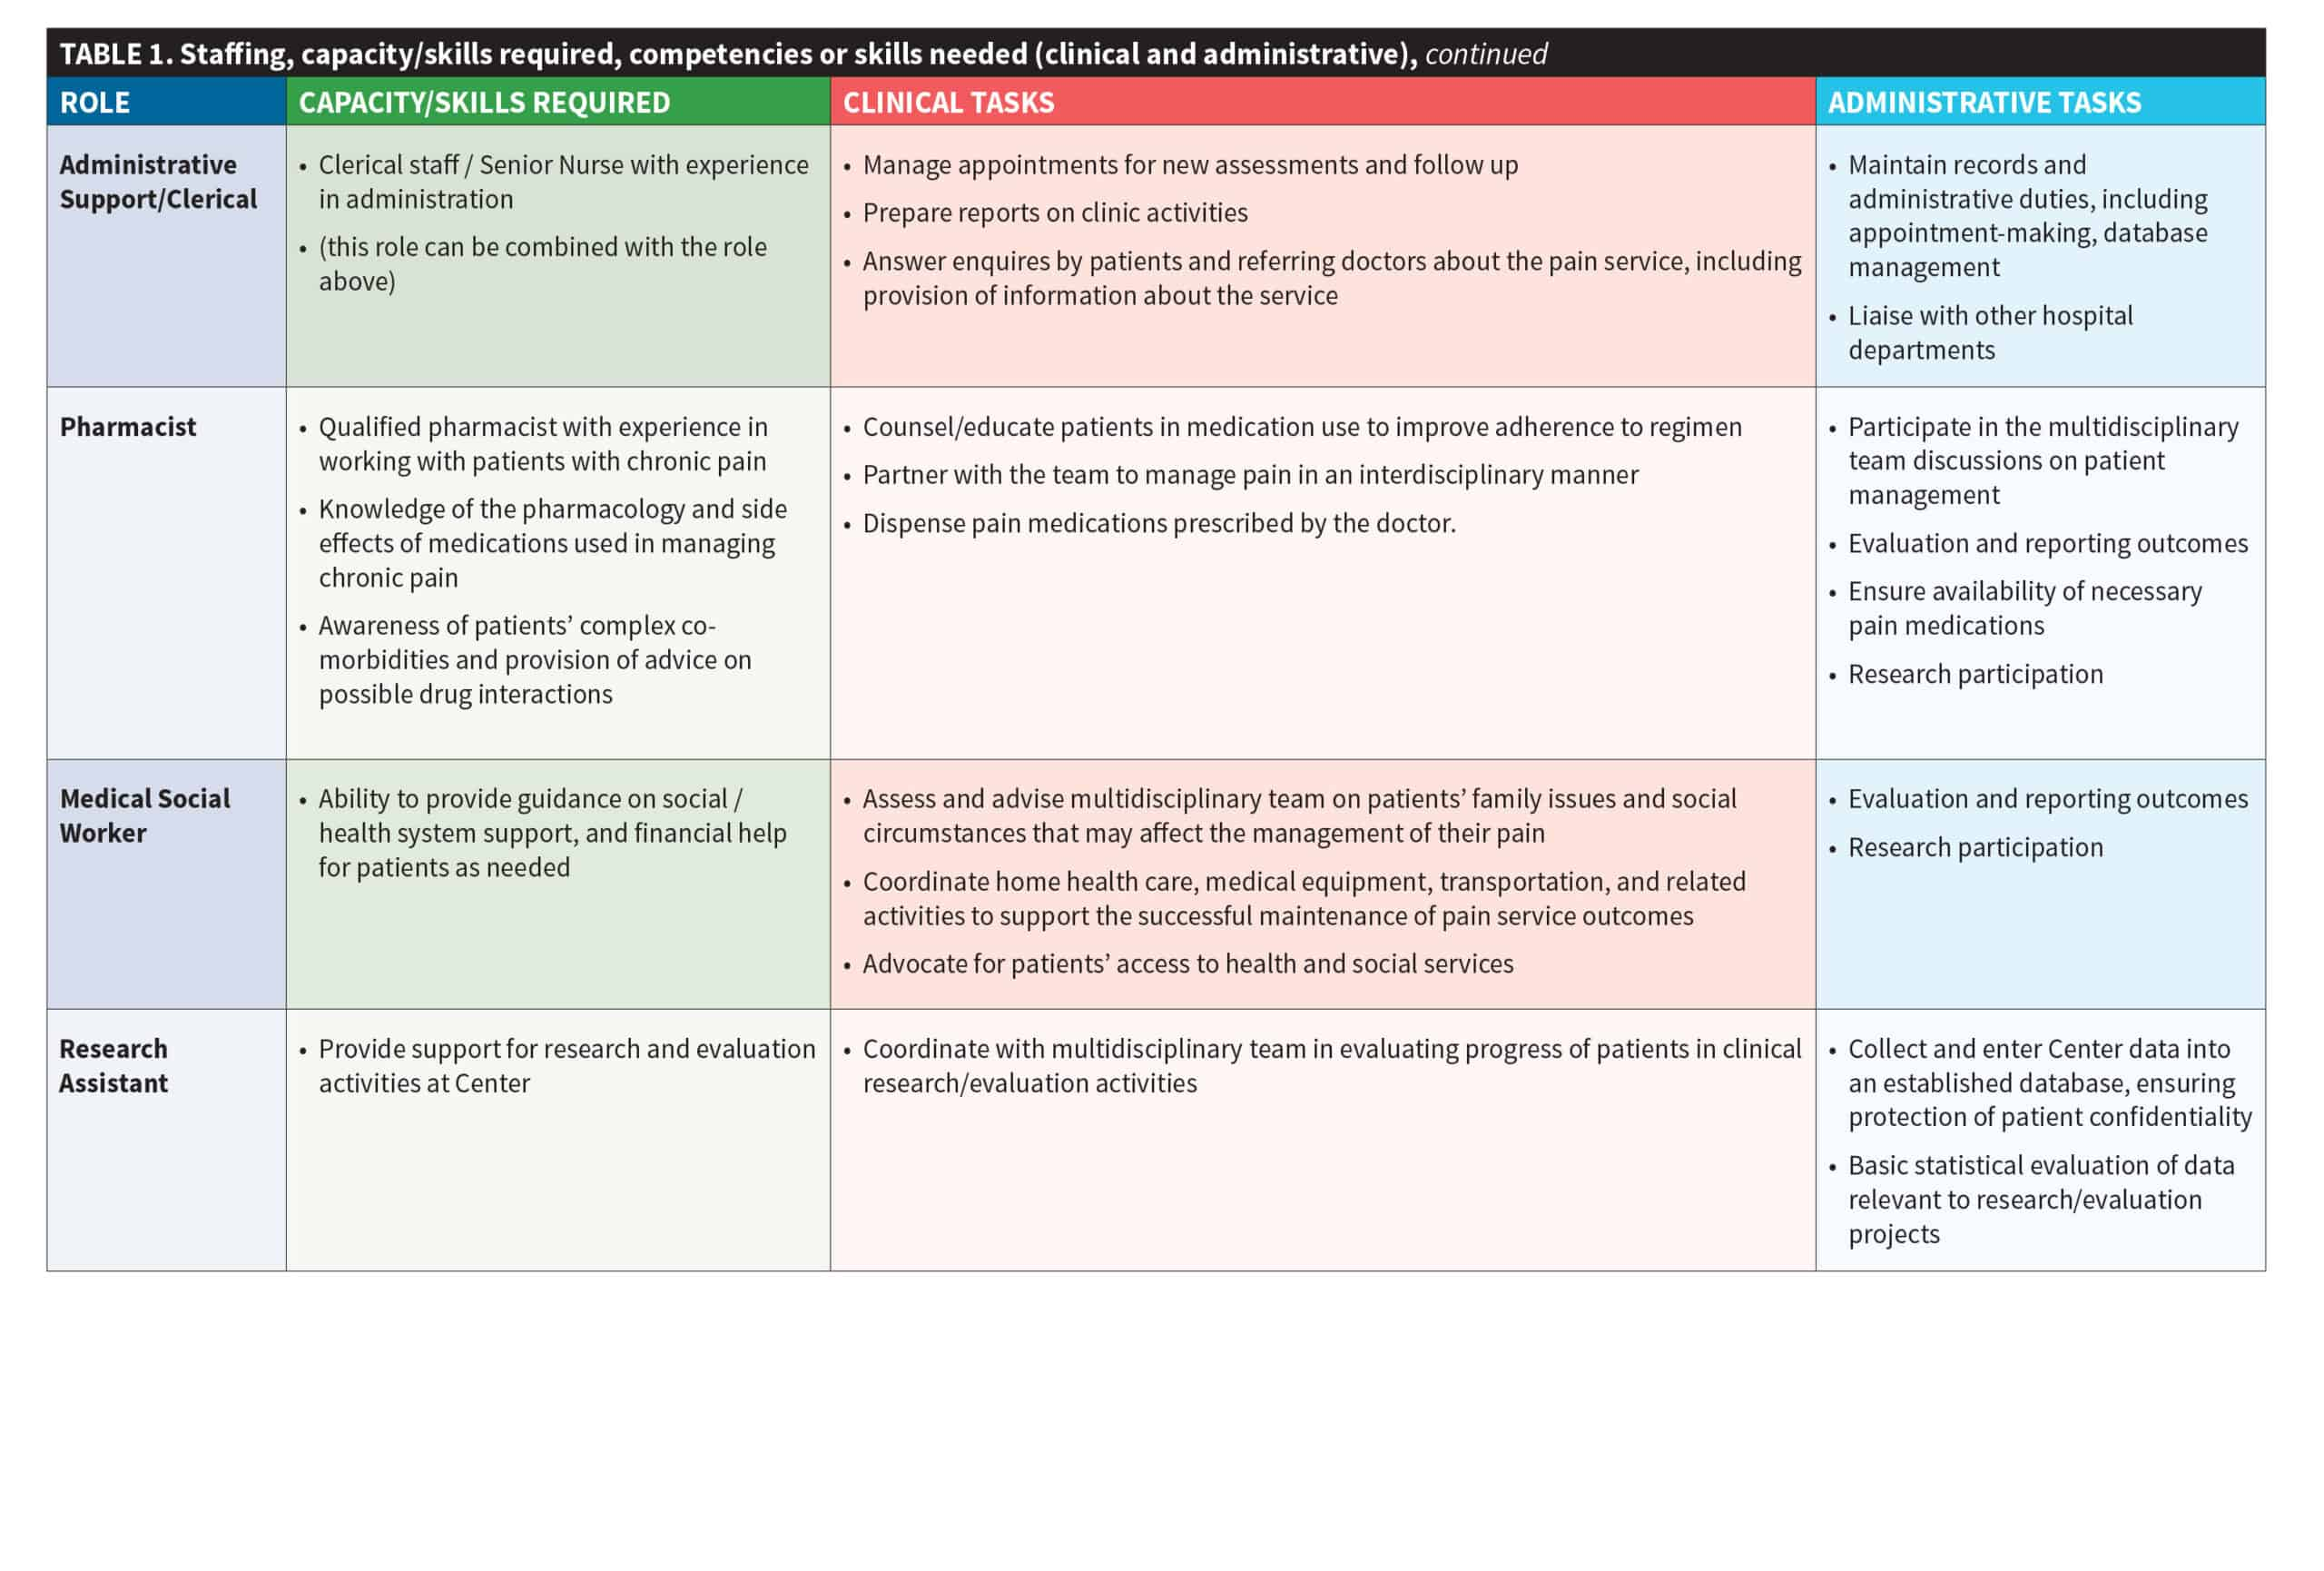 Table 1. Staffing, capacity/skills required, competencies or skills needed (clincial and administrative), continued